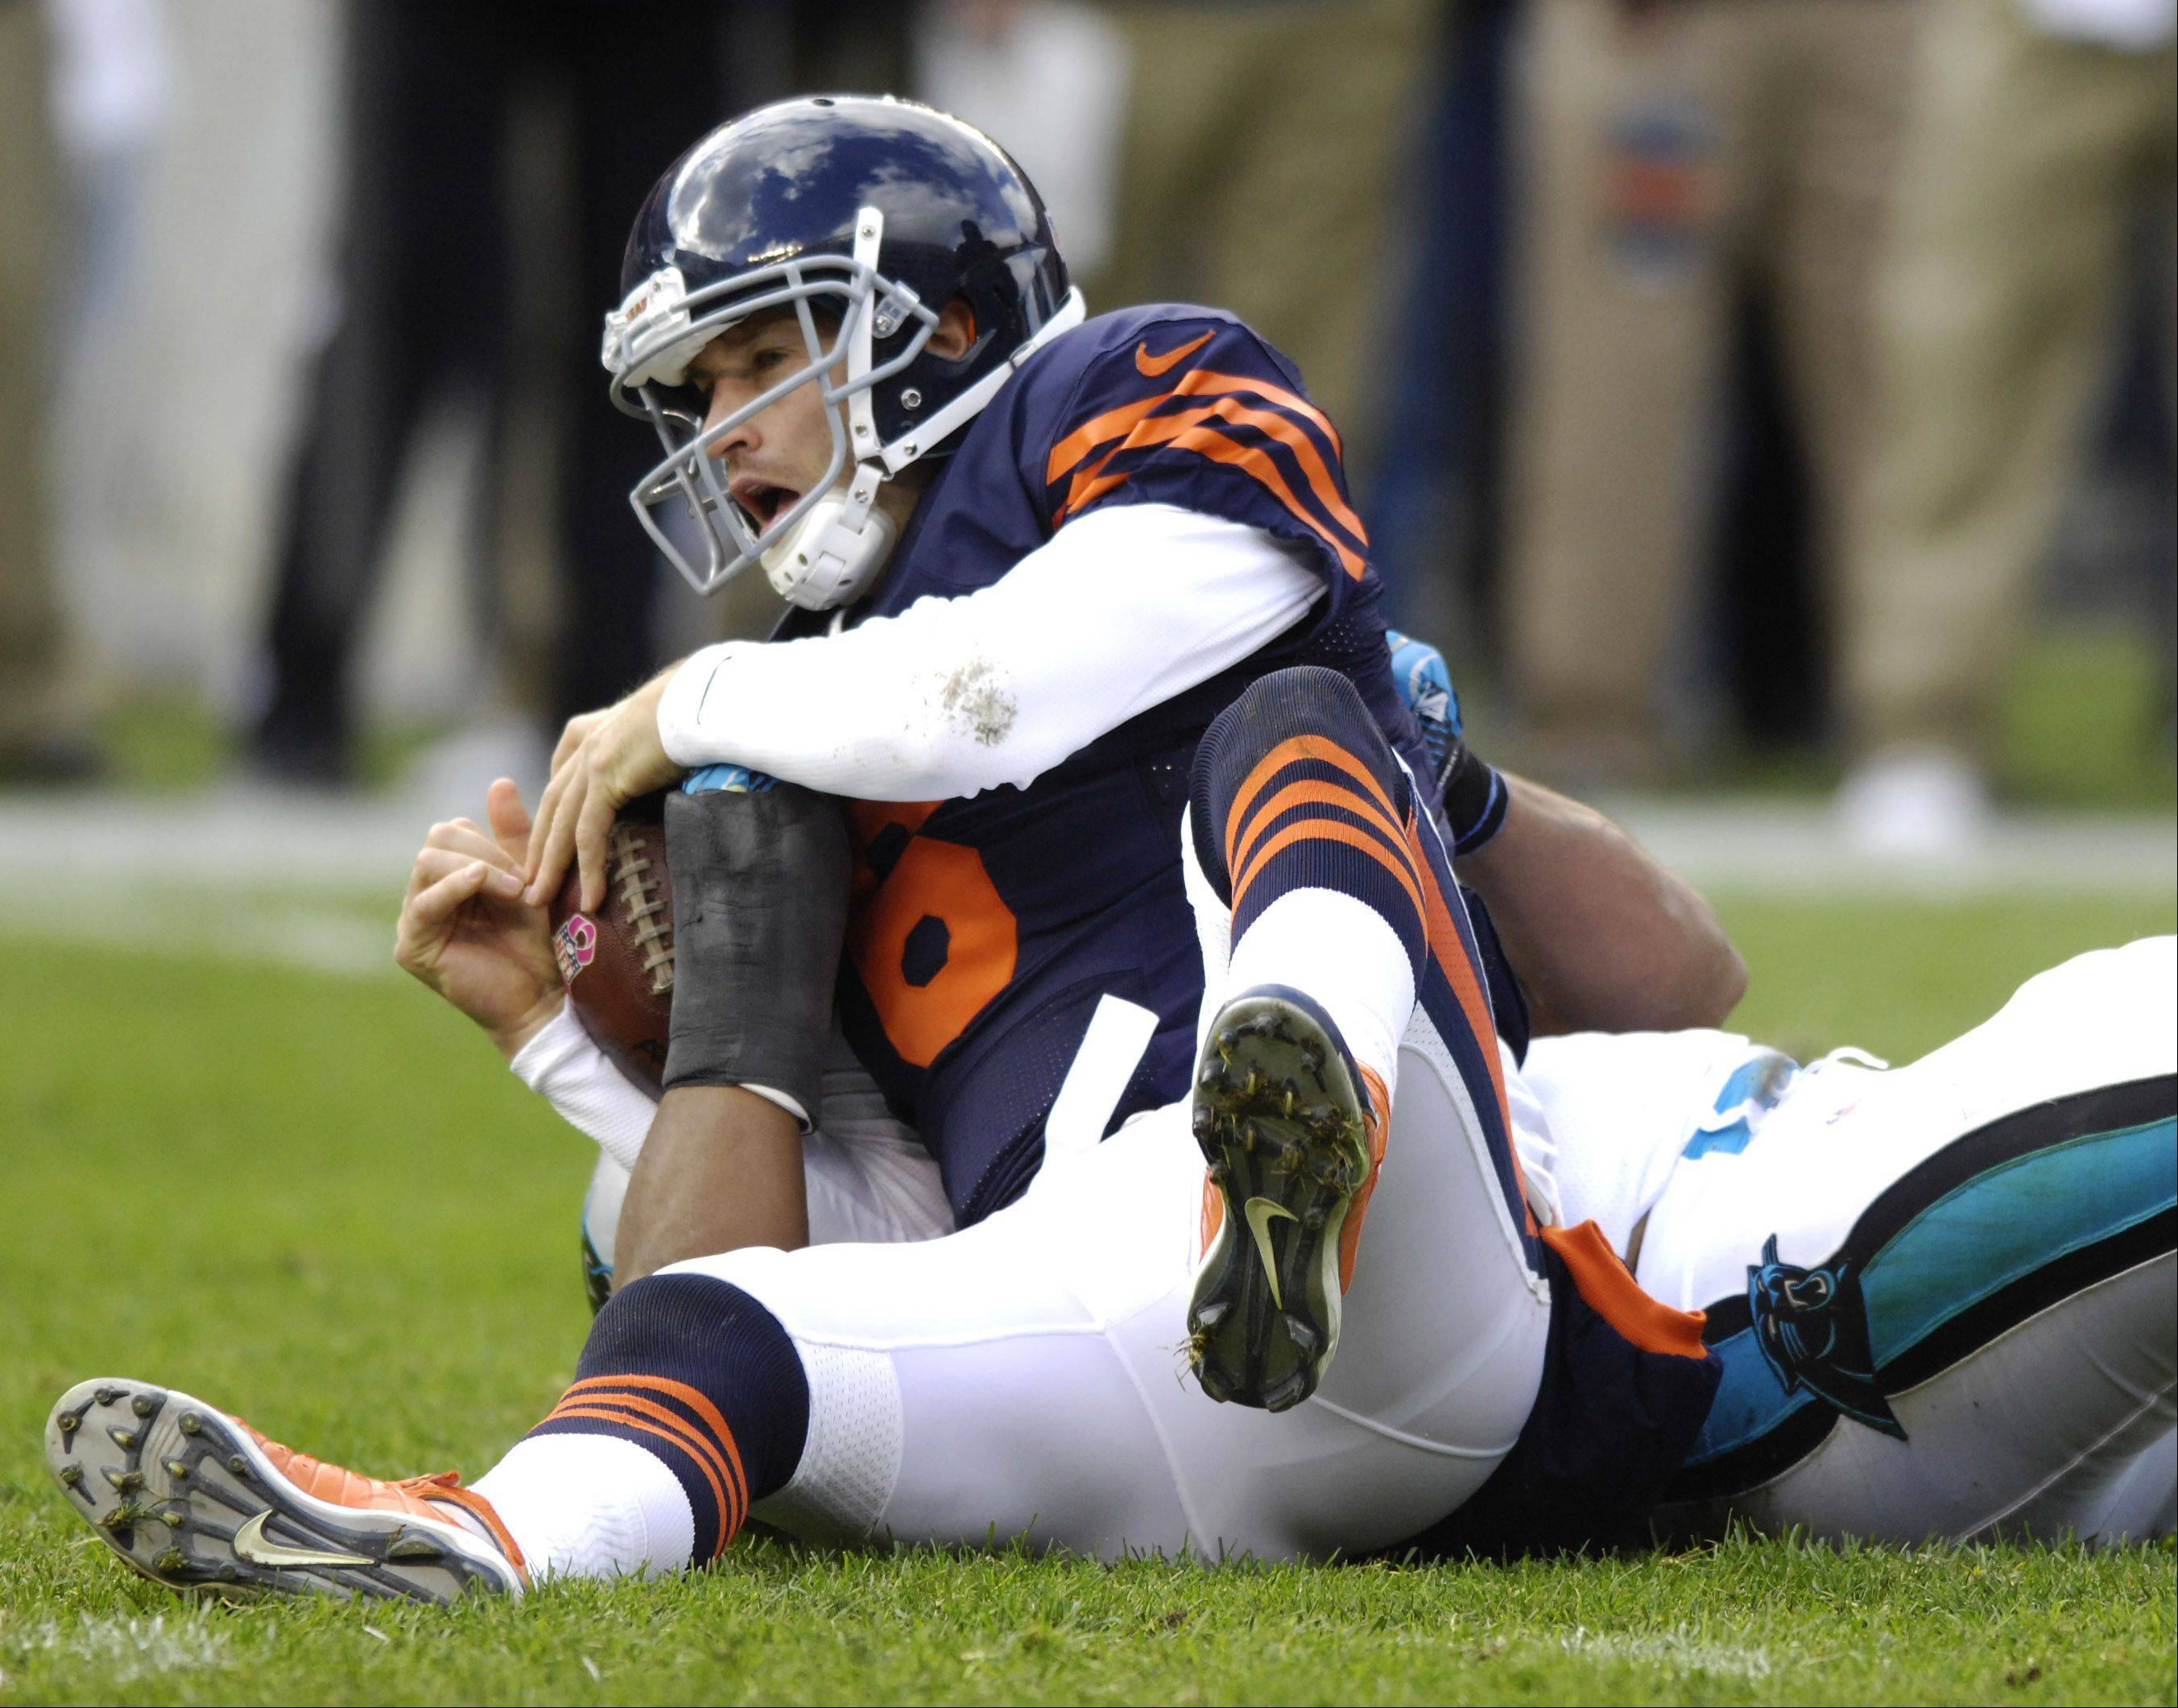 Chicago Bears quarterback Jay Cutler gets sacked during the second quarter of Sunday's game against the Carolina Panthers at Soldier Field.